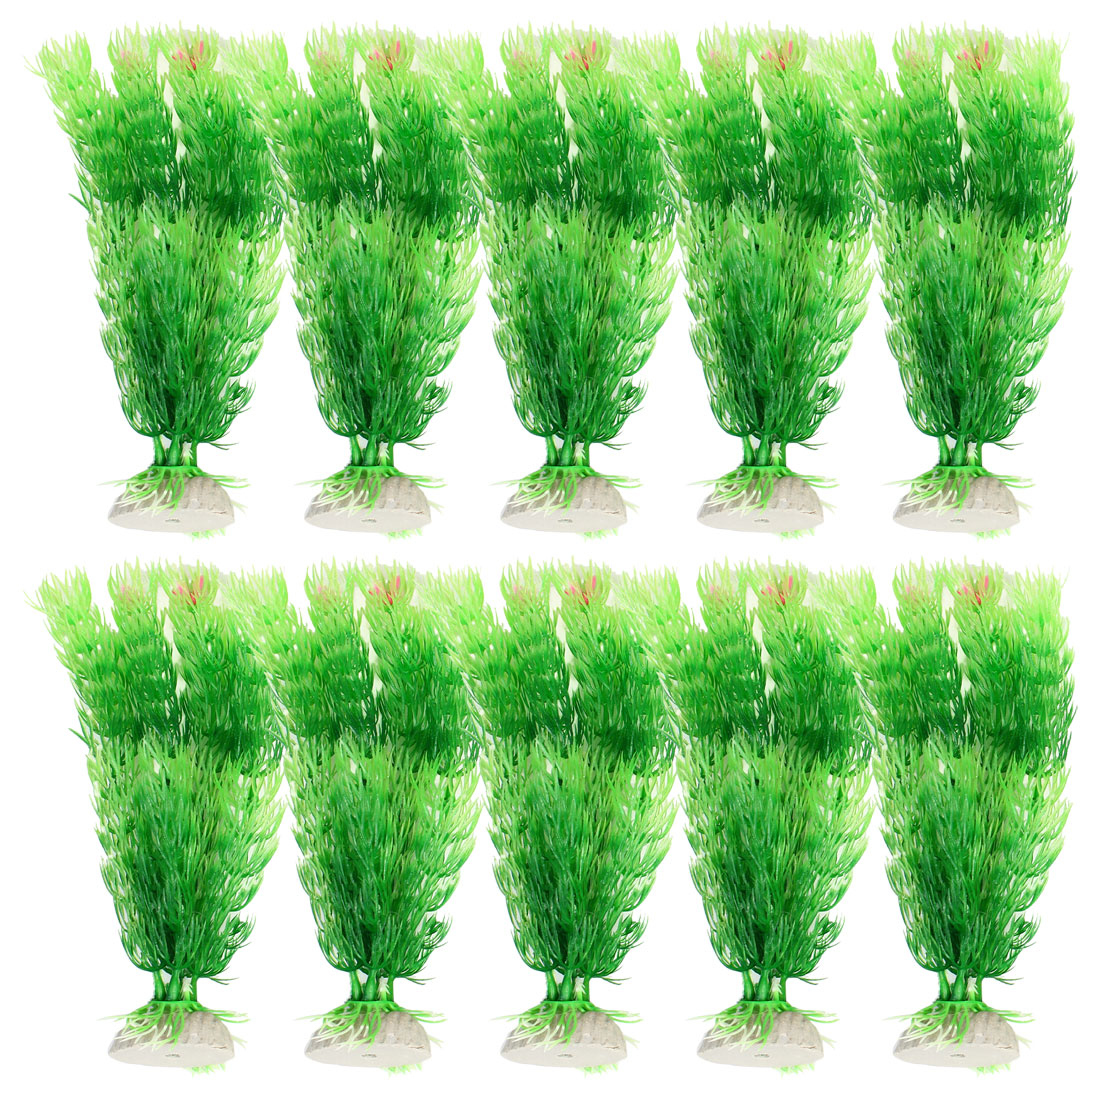 "Fish Tank 7.3"" High Ceramic Base Green Emulational Plastic Plants Grass 10 Pcs"